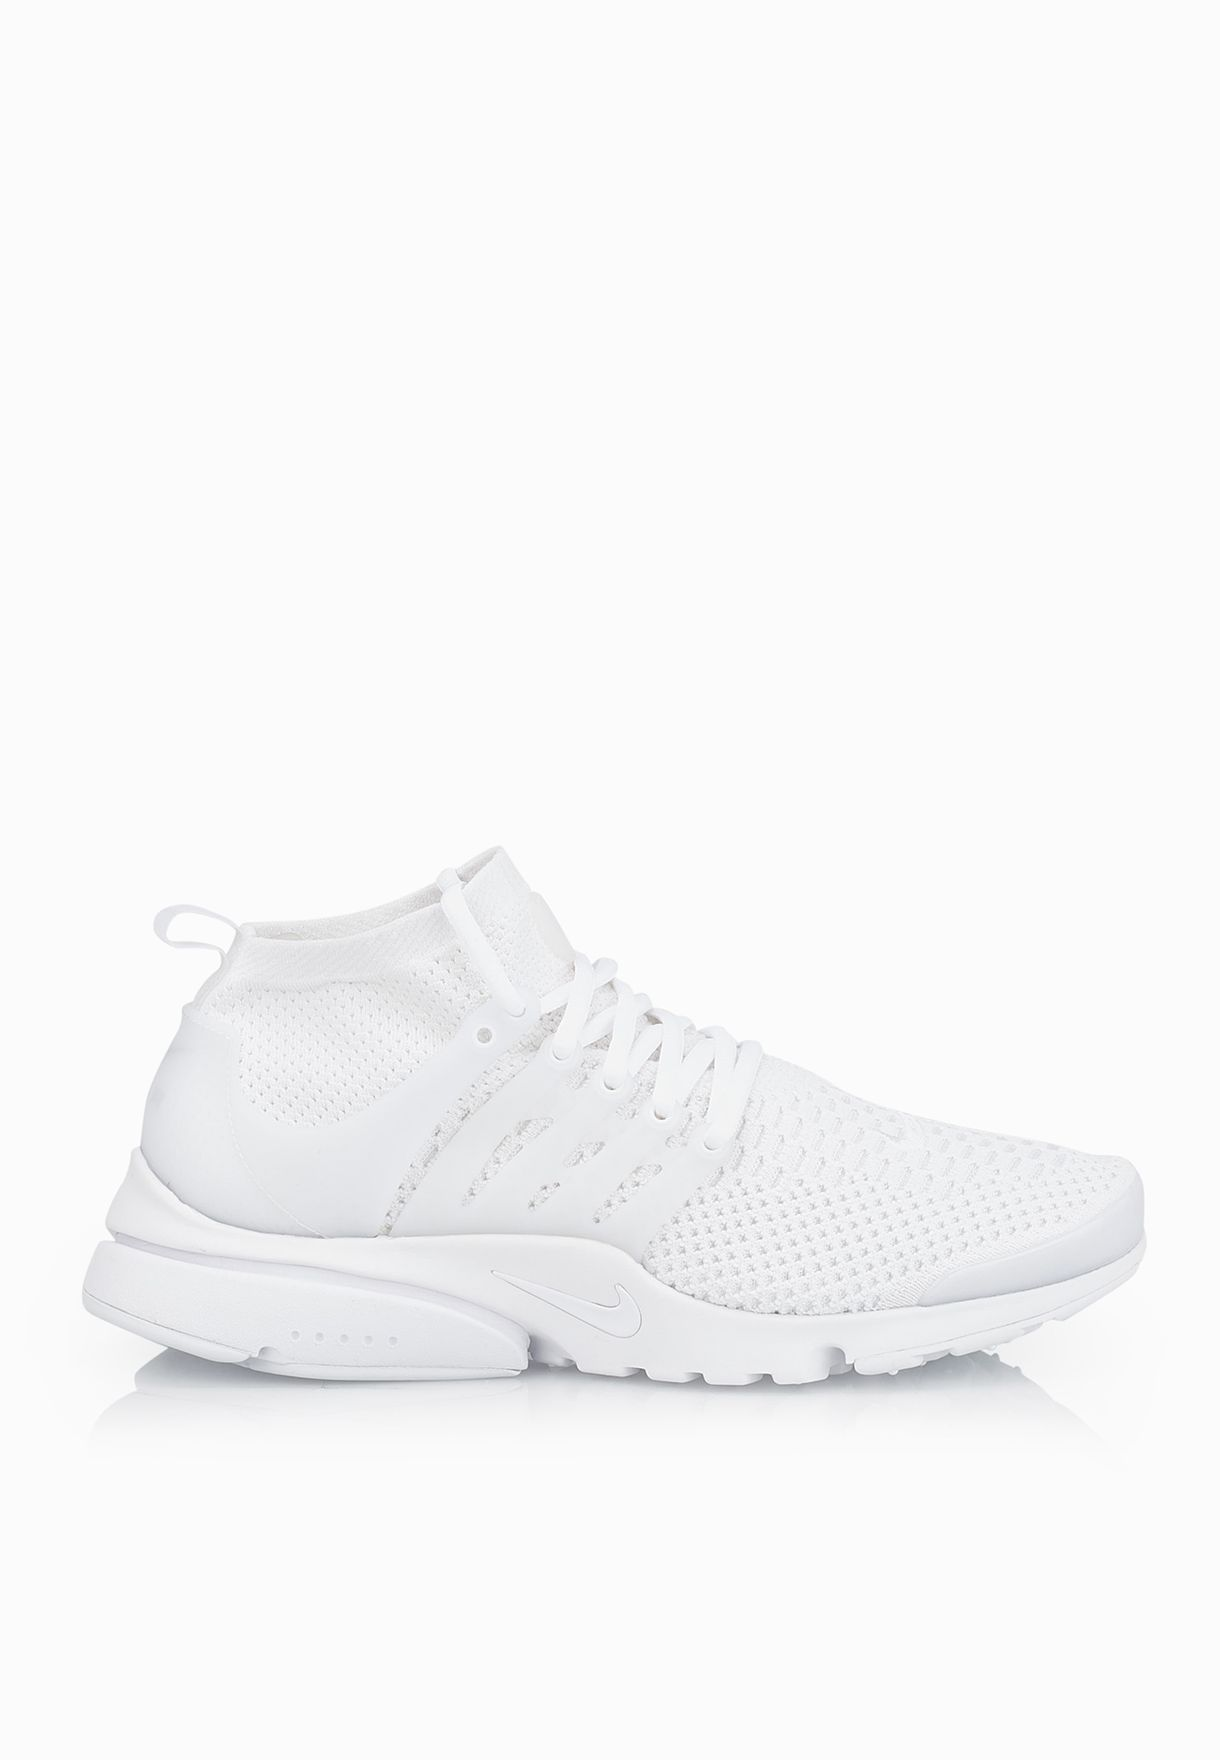 Shop Nike white Air Presto Flyknit Ultra 835570-100 for Men in UAE ... 7fee7f7878